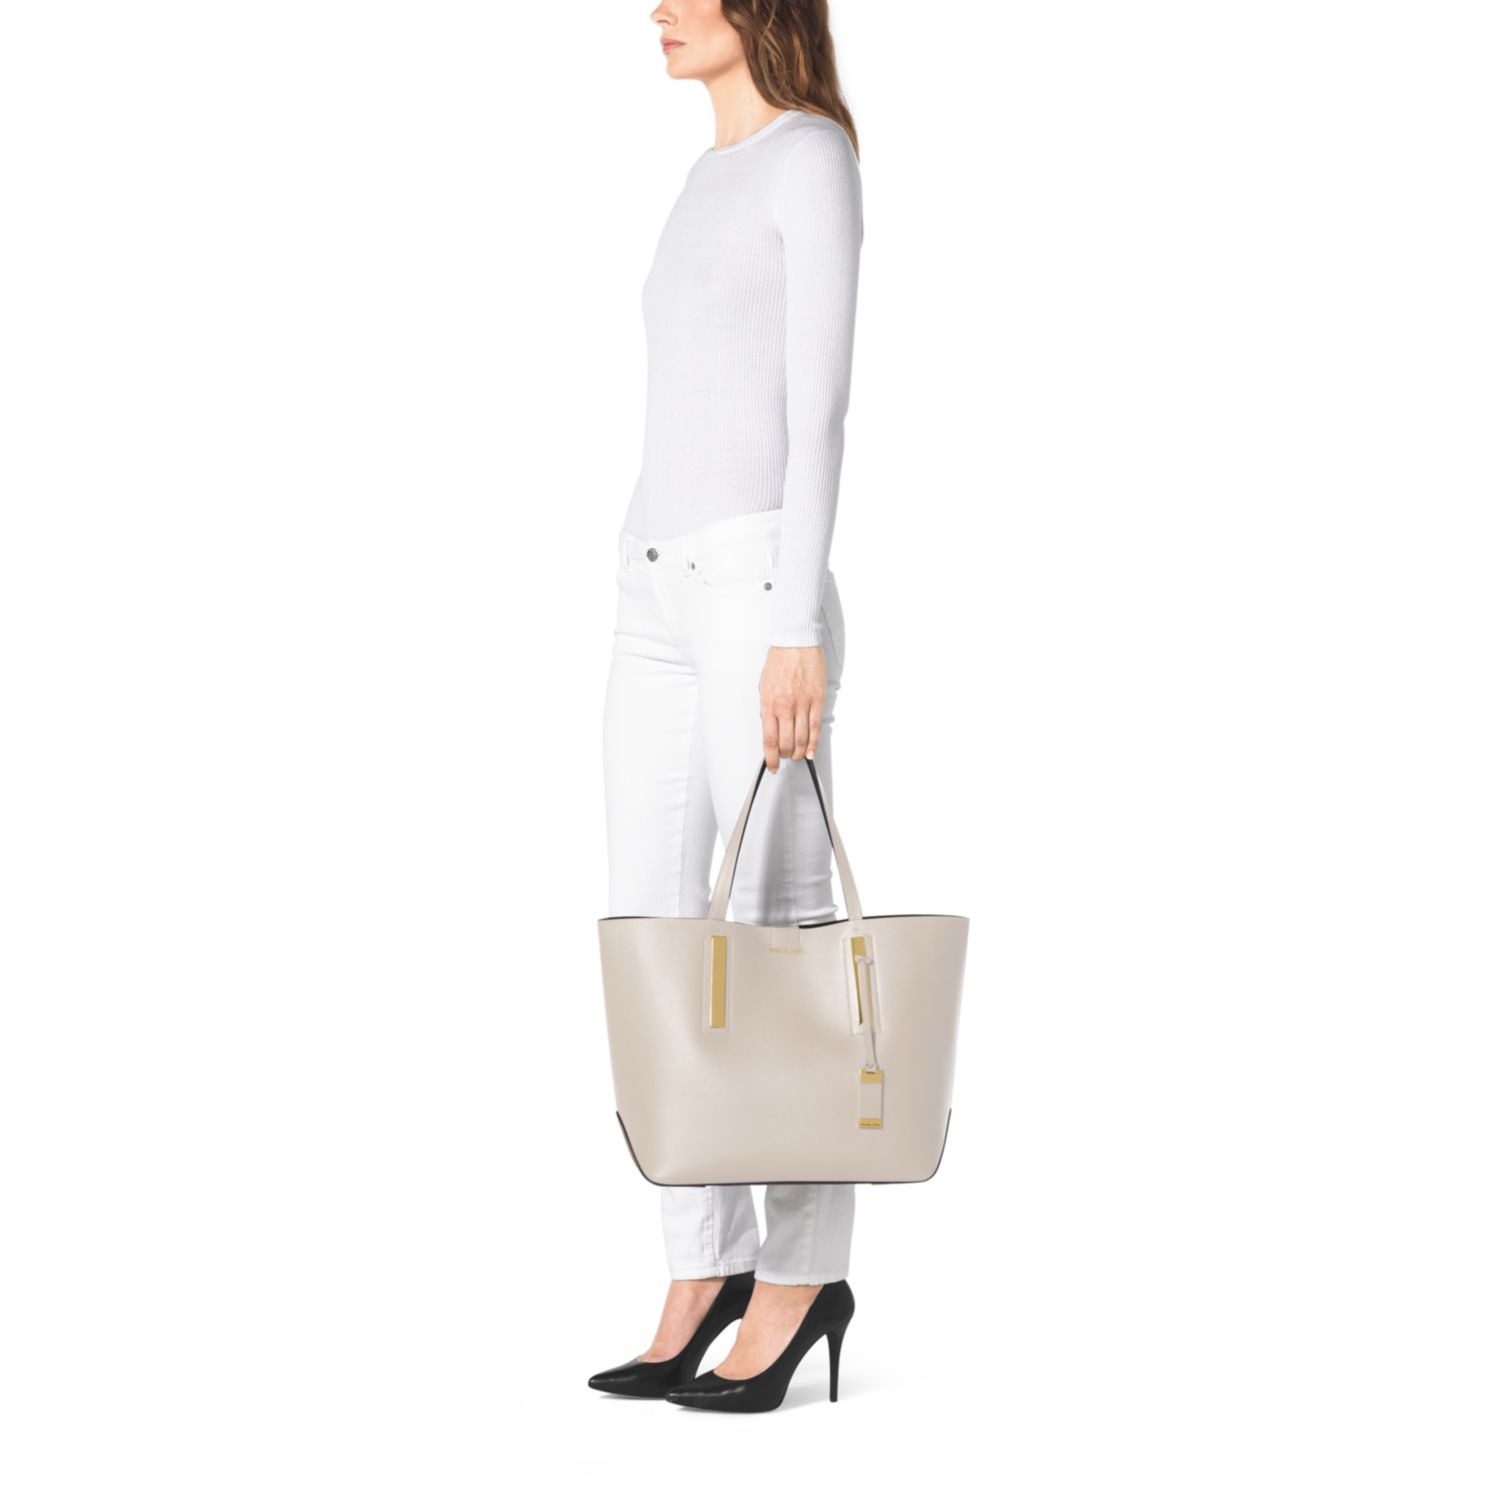 fb872f8e3161 Michael Kors Jaryn Calf Leather Tote in Natural - Lyst